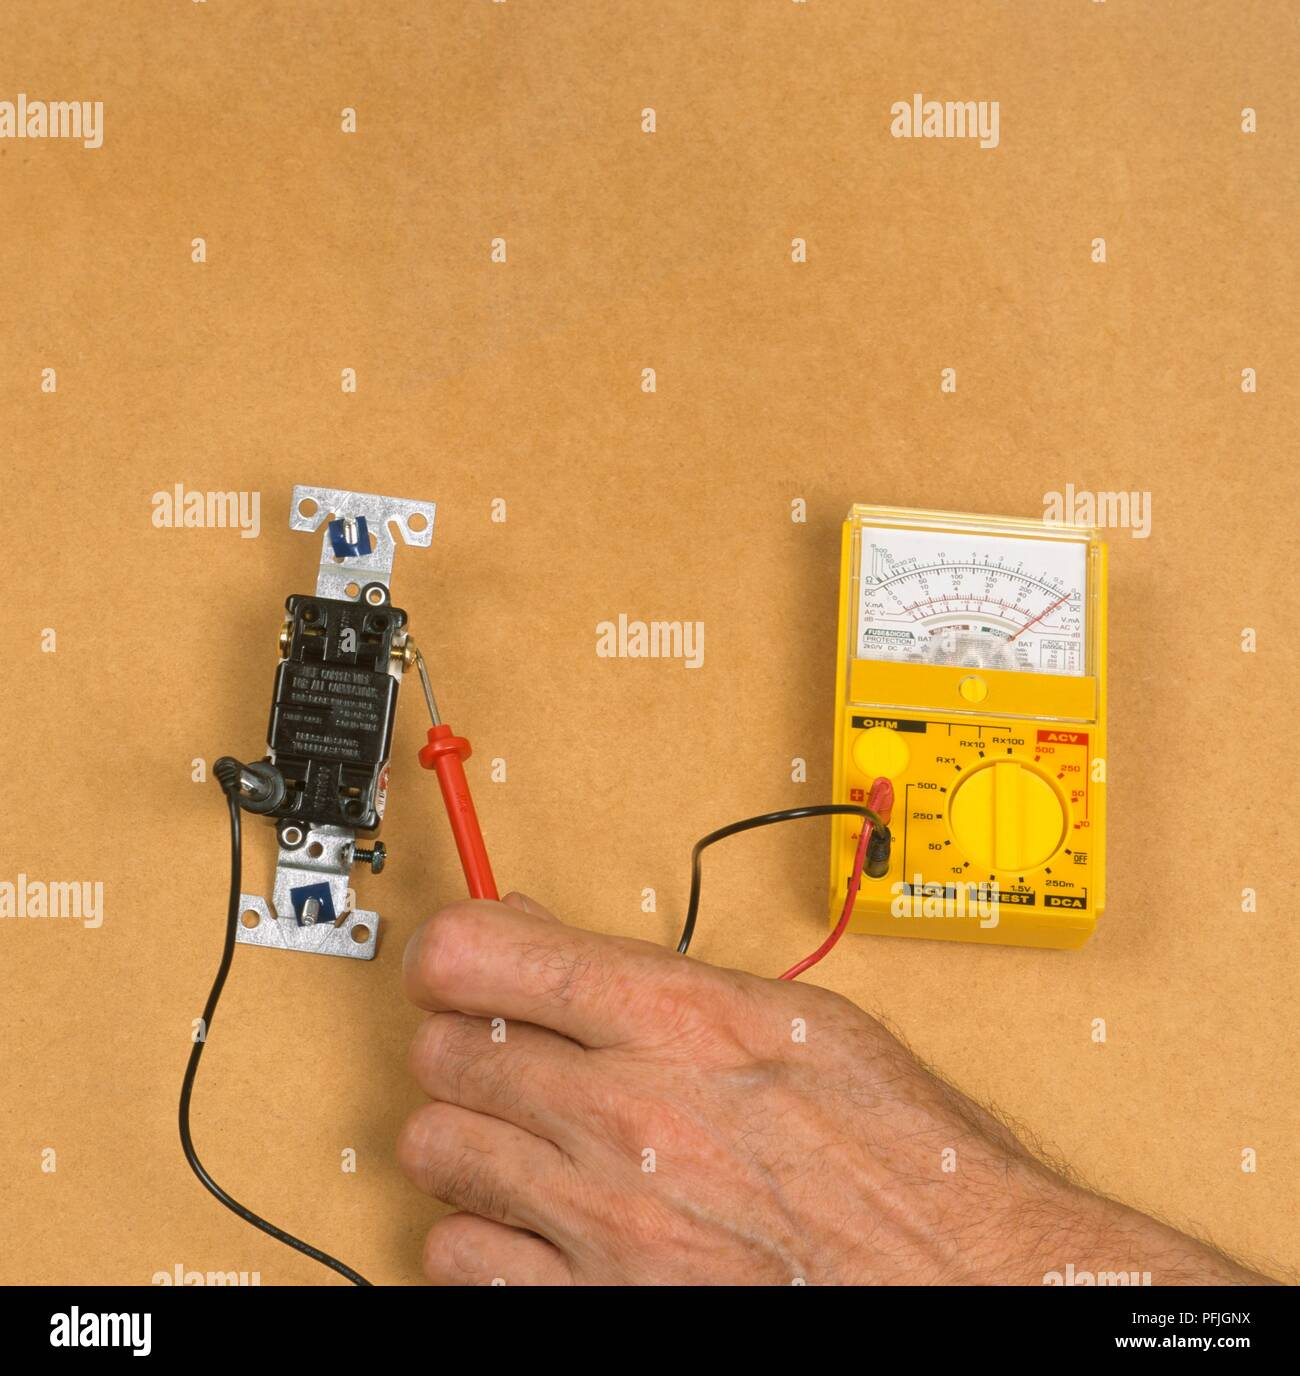 Using Electric Gauge To Test Current Close Up Stock Photo Electricity